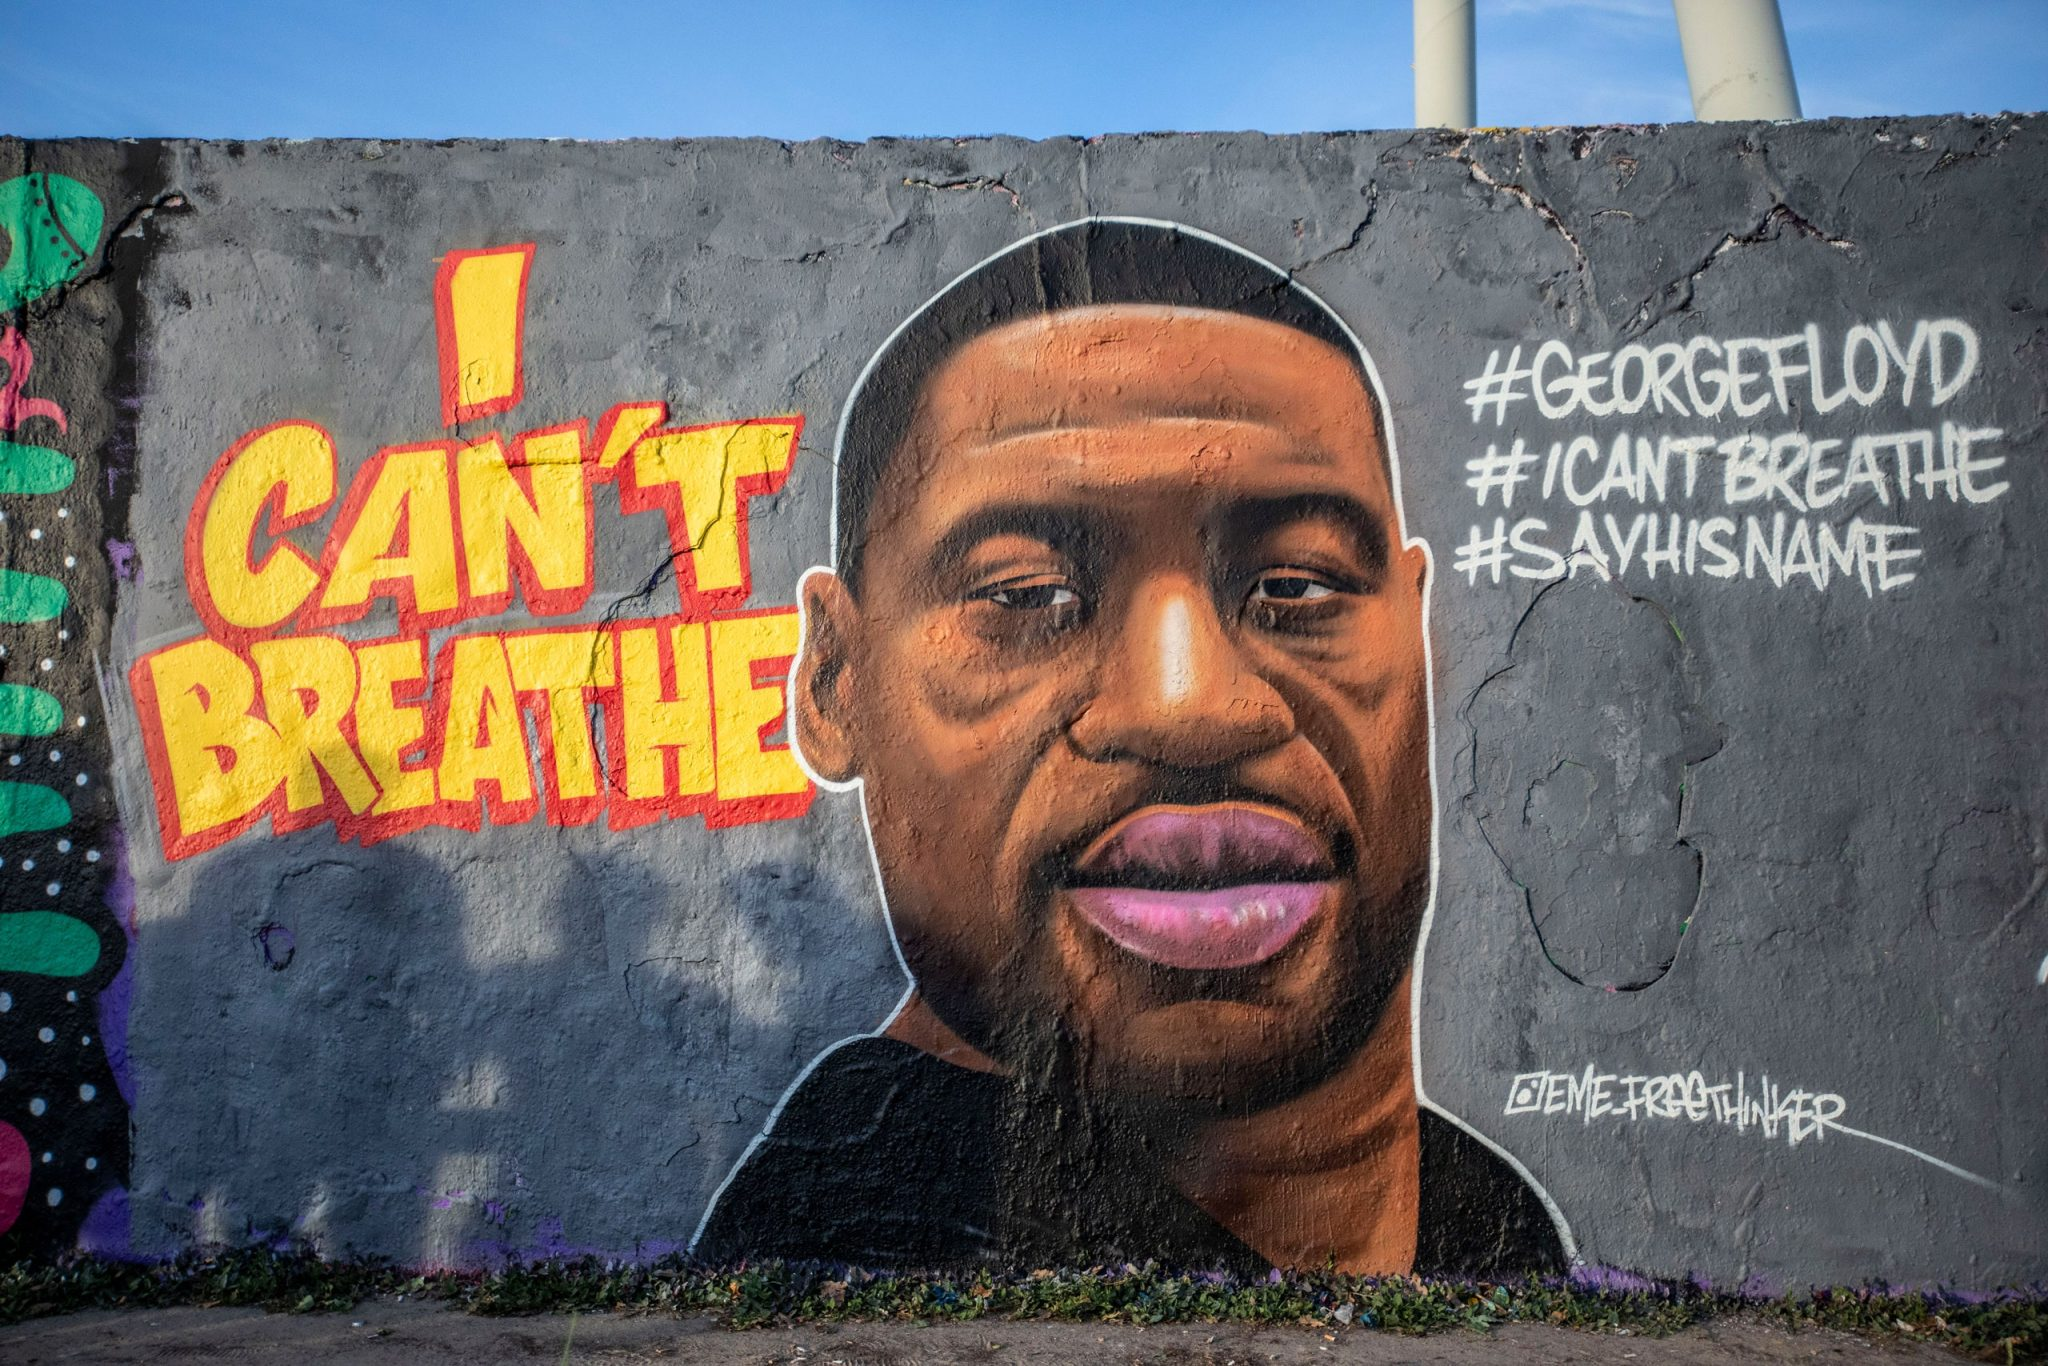 A mural of George Floyd, US citizen murdered by police on 5/25/20 #georgefloyd #sayhisname #icantbreathe wall mural of an iconic image of george floyd with accompanying text and hashtags as described